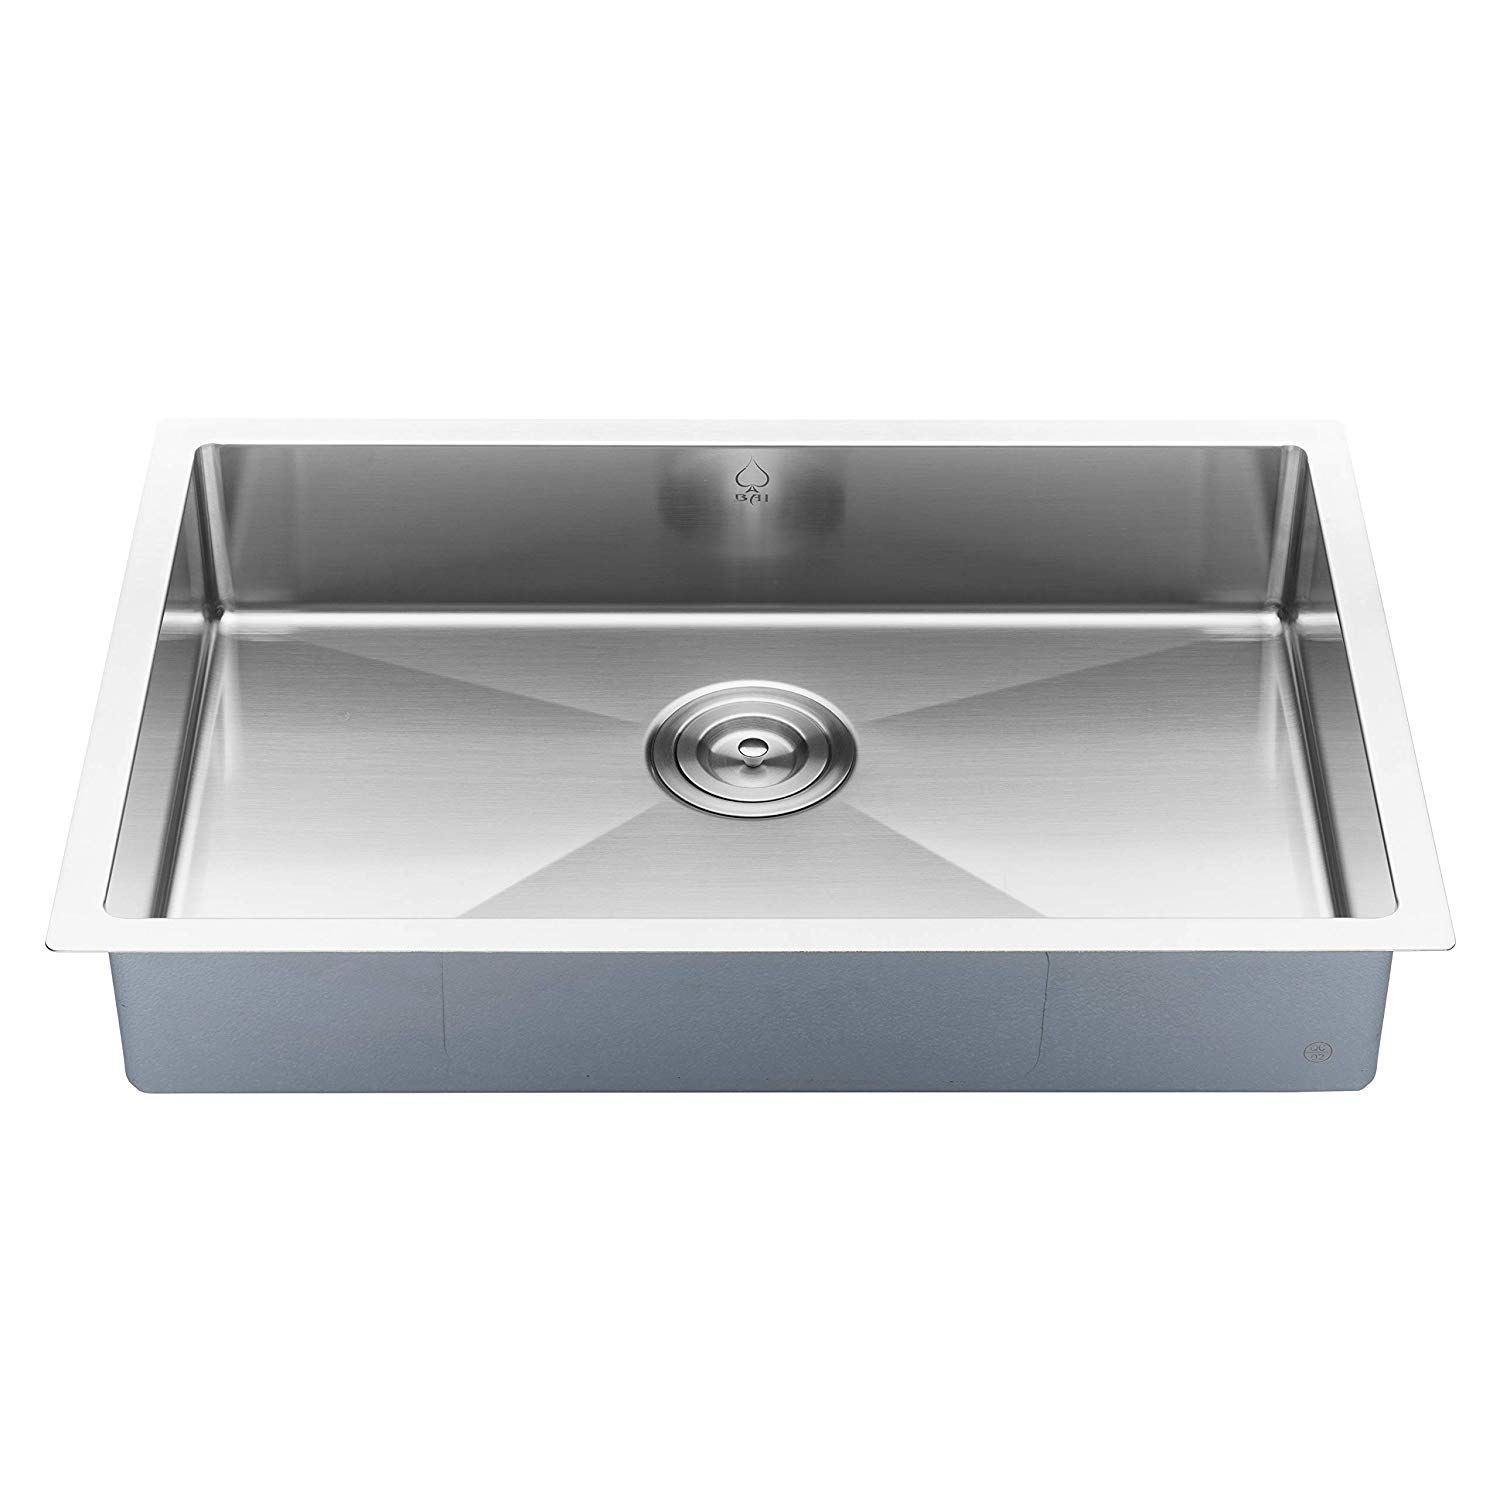 Bai 1247 27 Shallow Handmade Stainless Steel Kitchen Sink Single